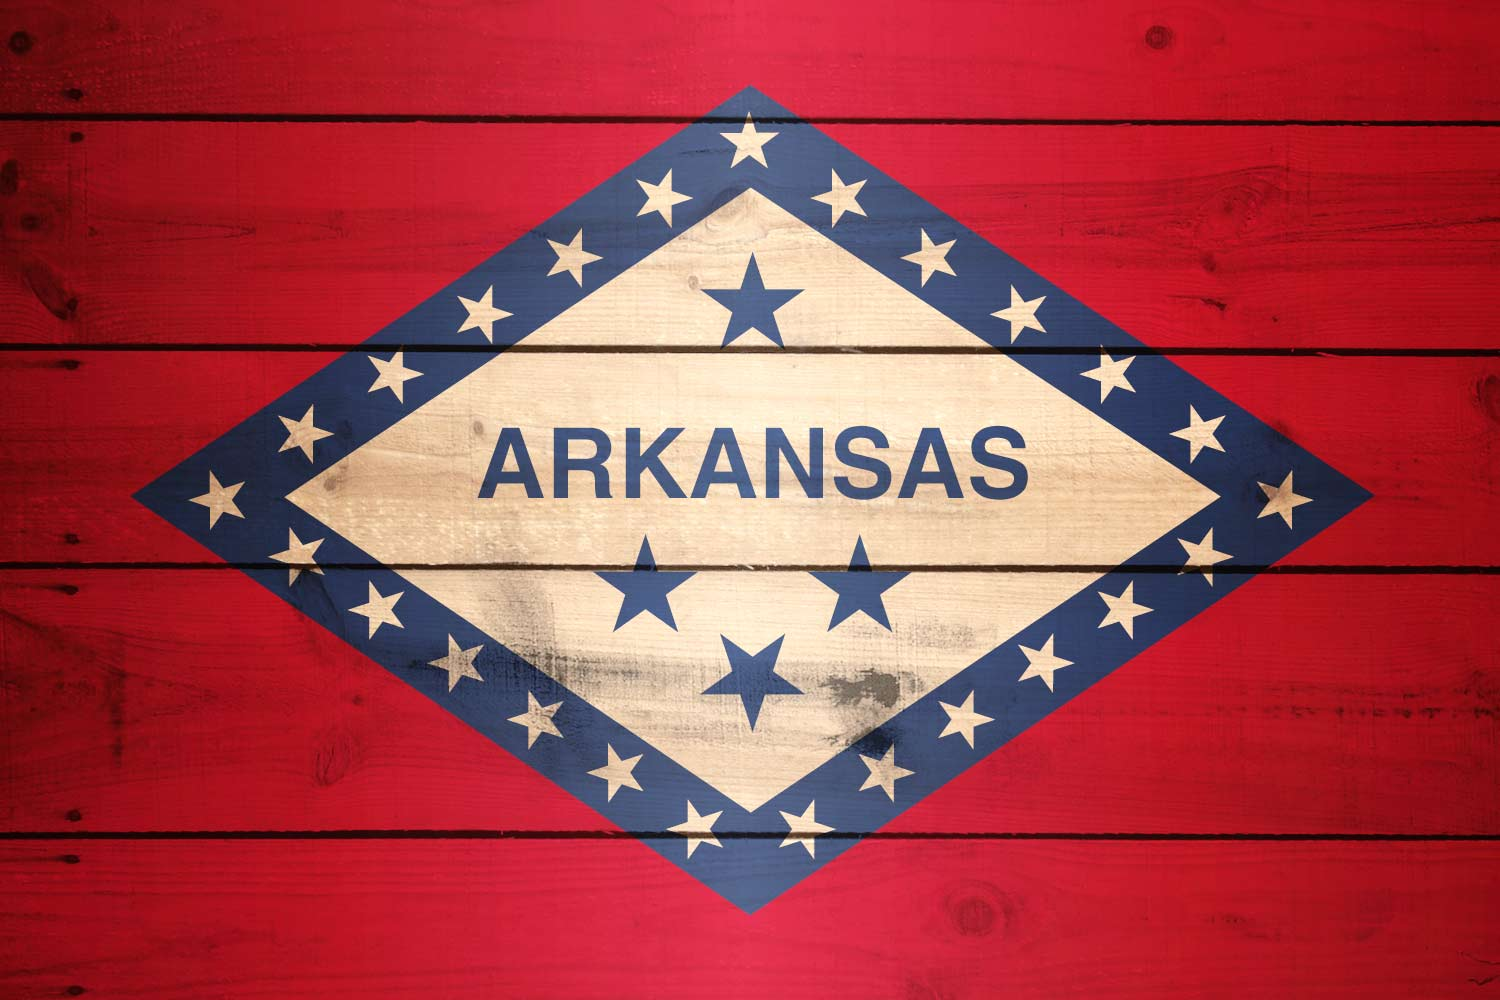 Arkansas-Flag-US-State-Wood-XL.jpg